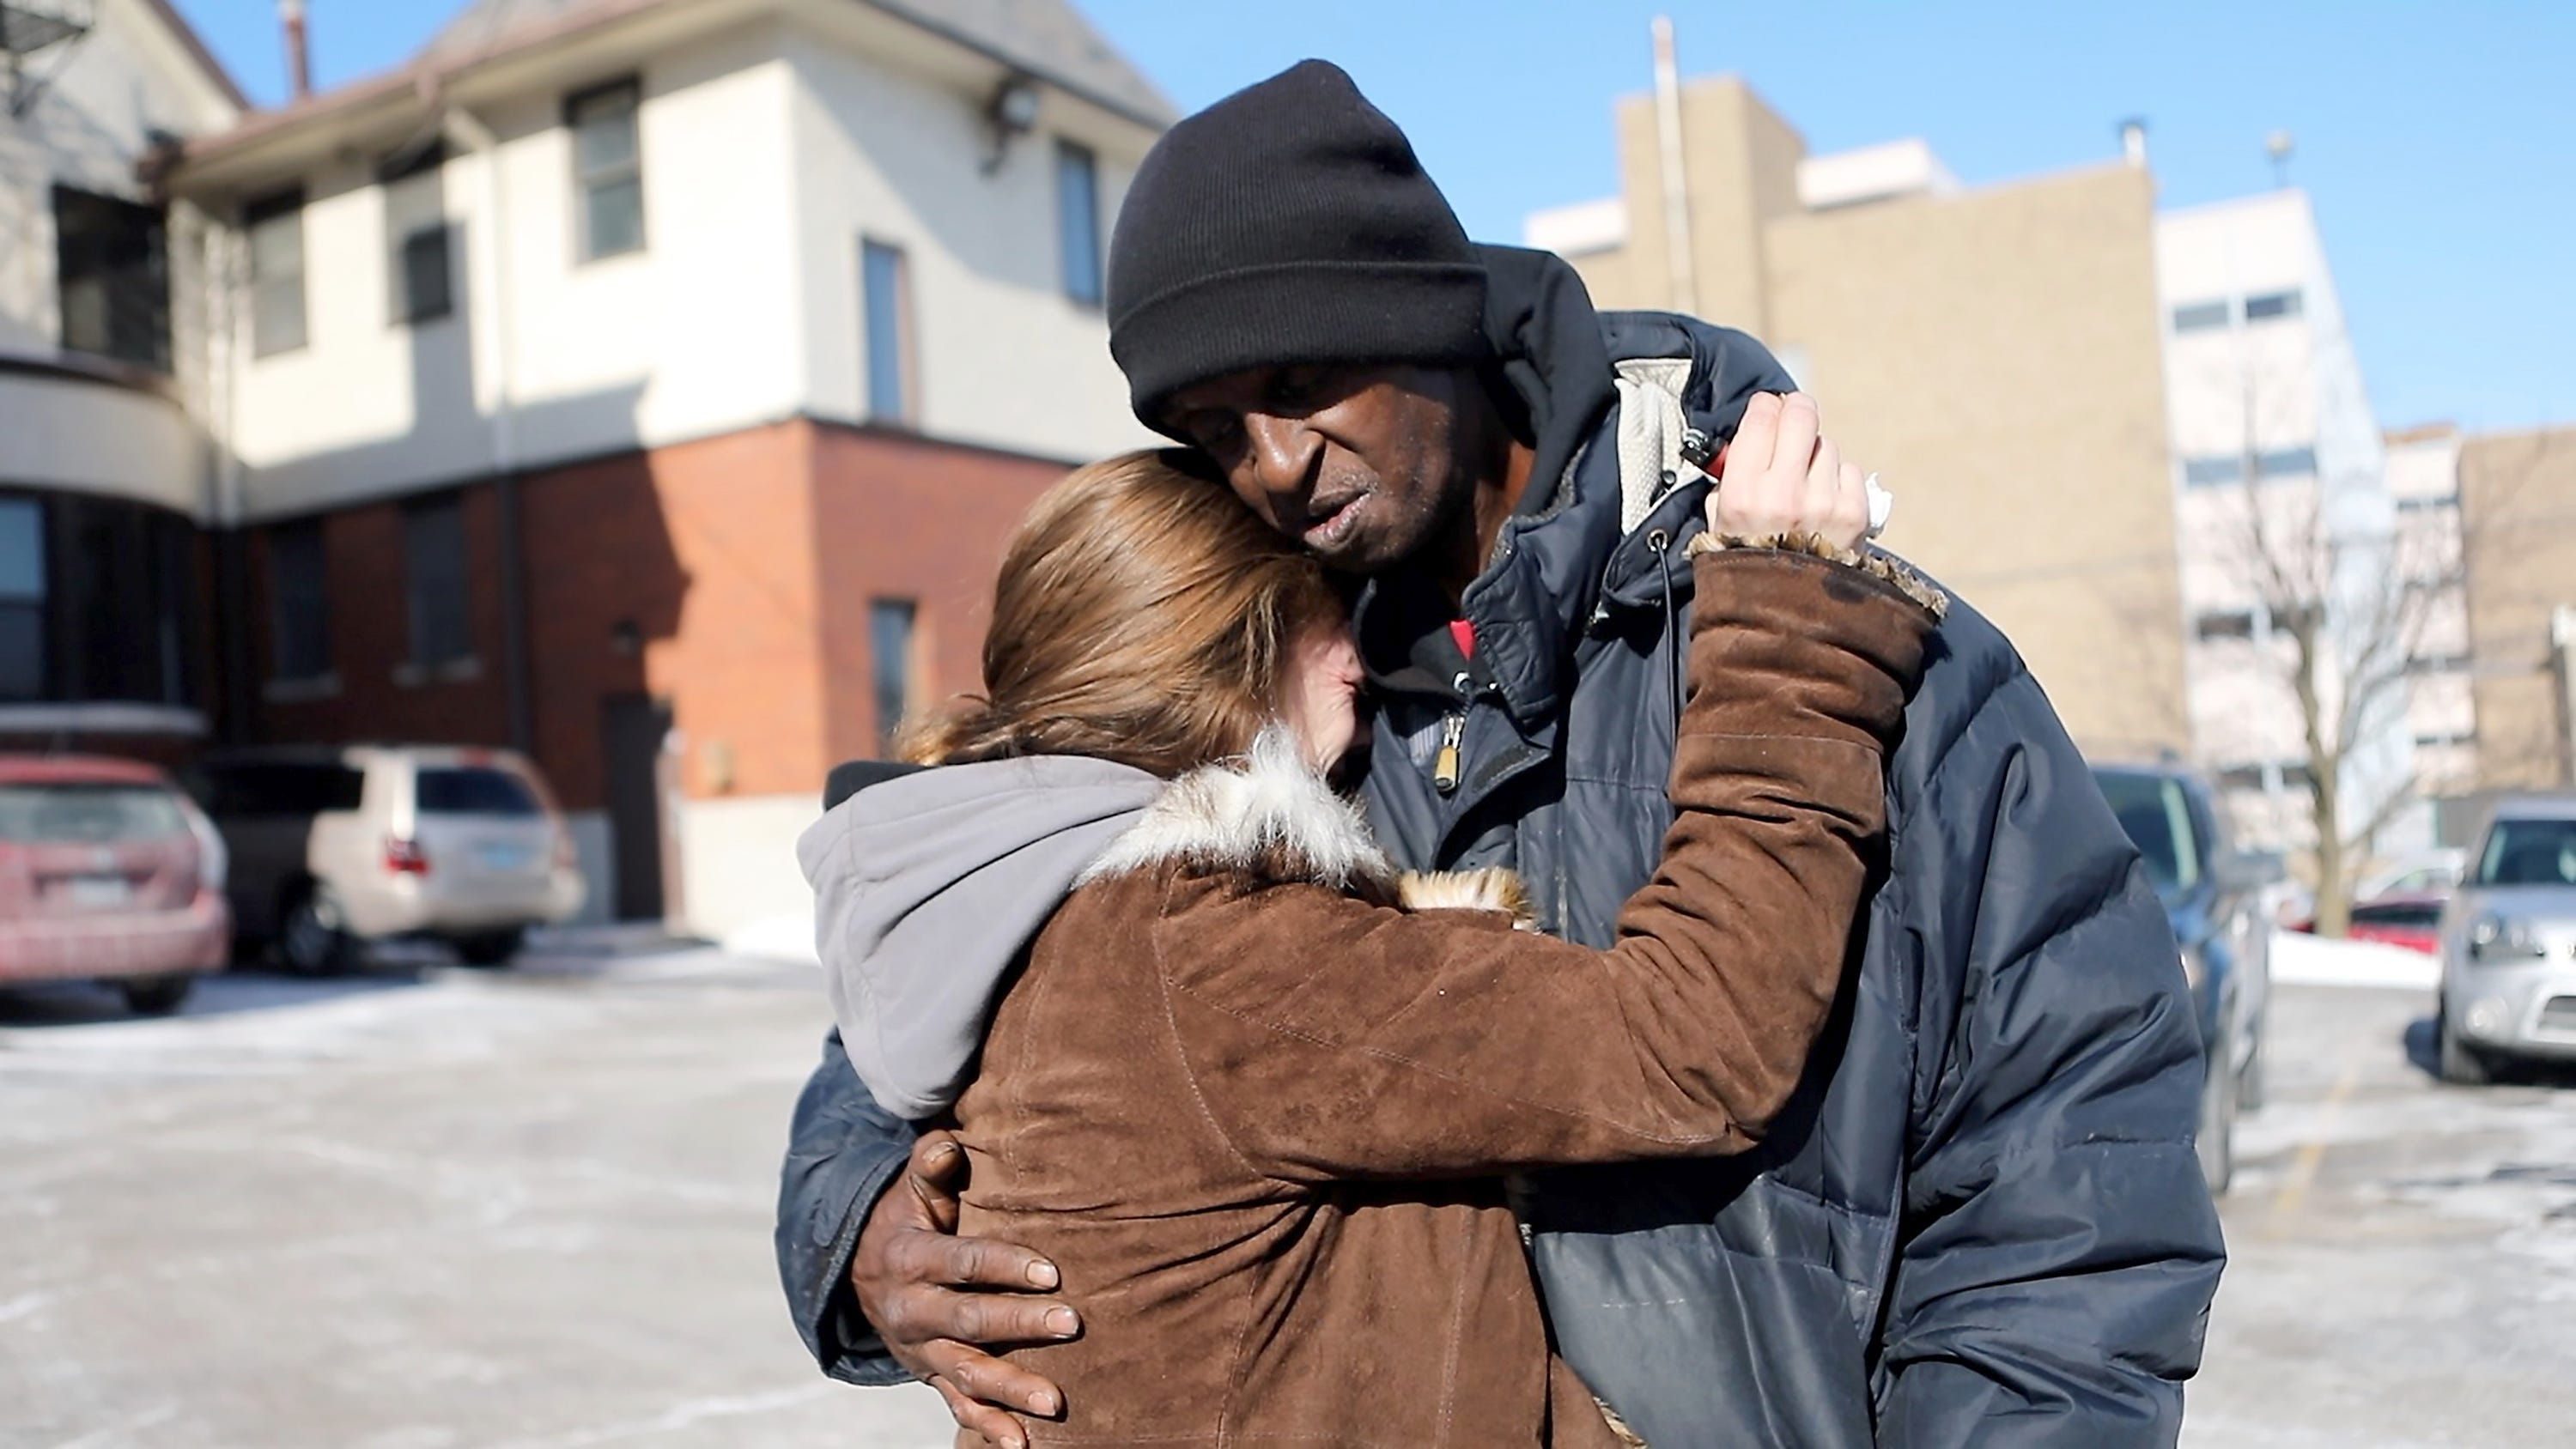 Meet Lindsey Bolar: After life of addiction, he's now helping others